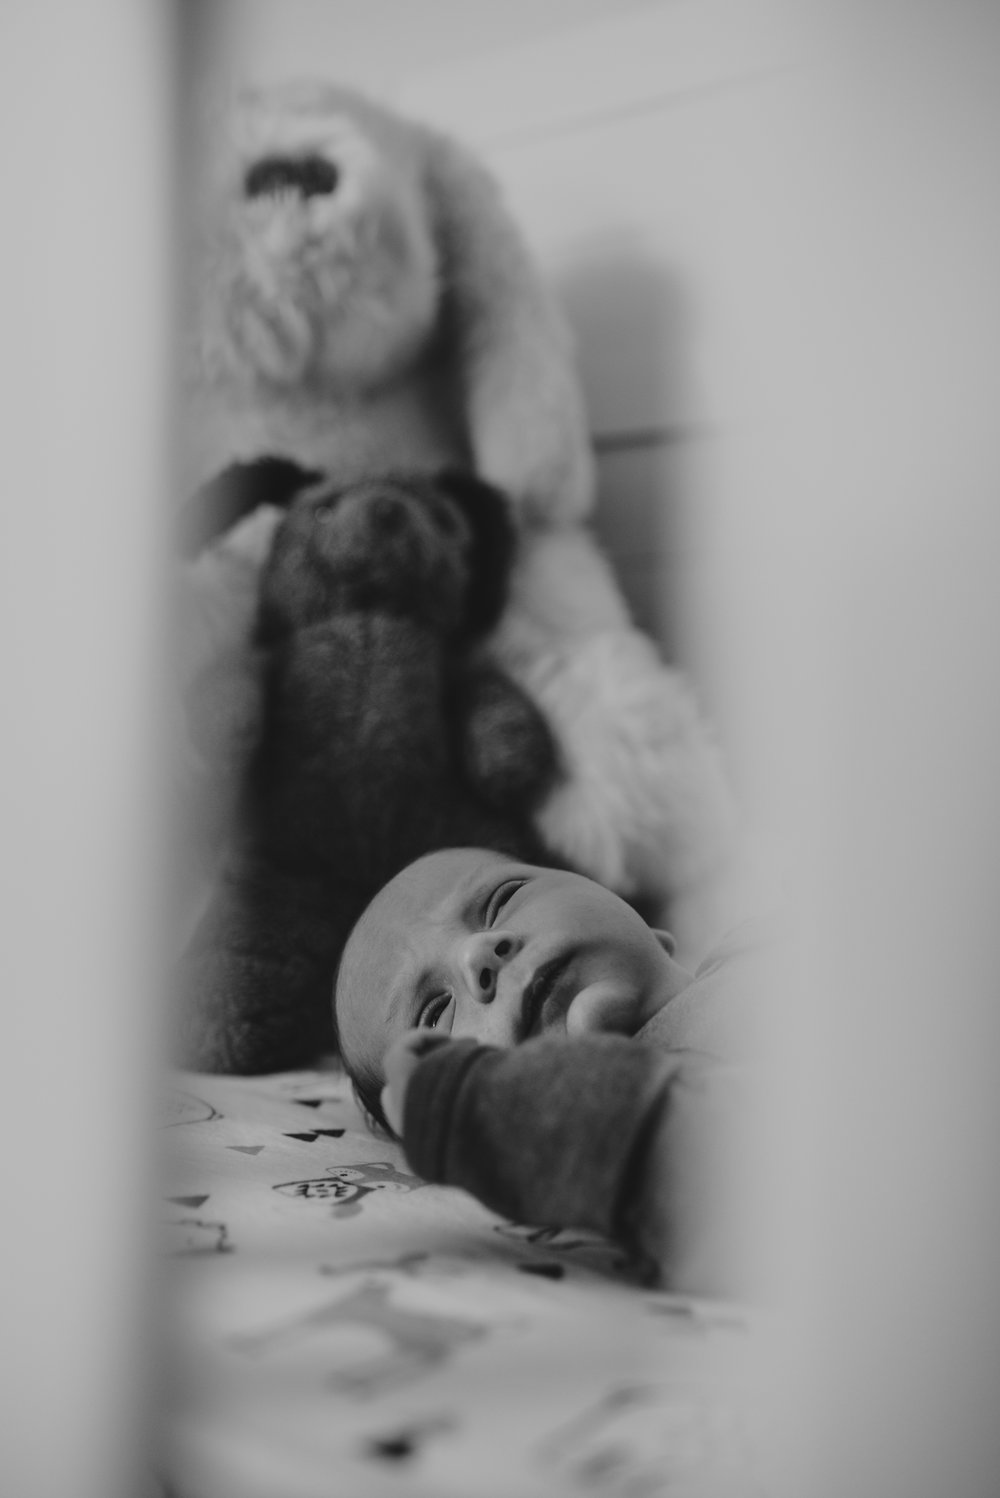 The new baby lays in his crib with his parents' stuffed animals in his nursery in Wake Forest, a black and white image by Rose Trail Images.